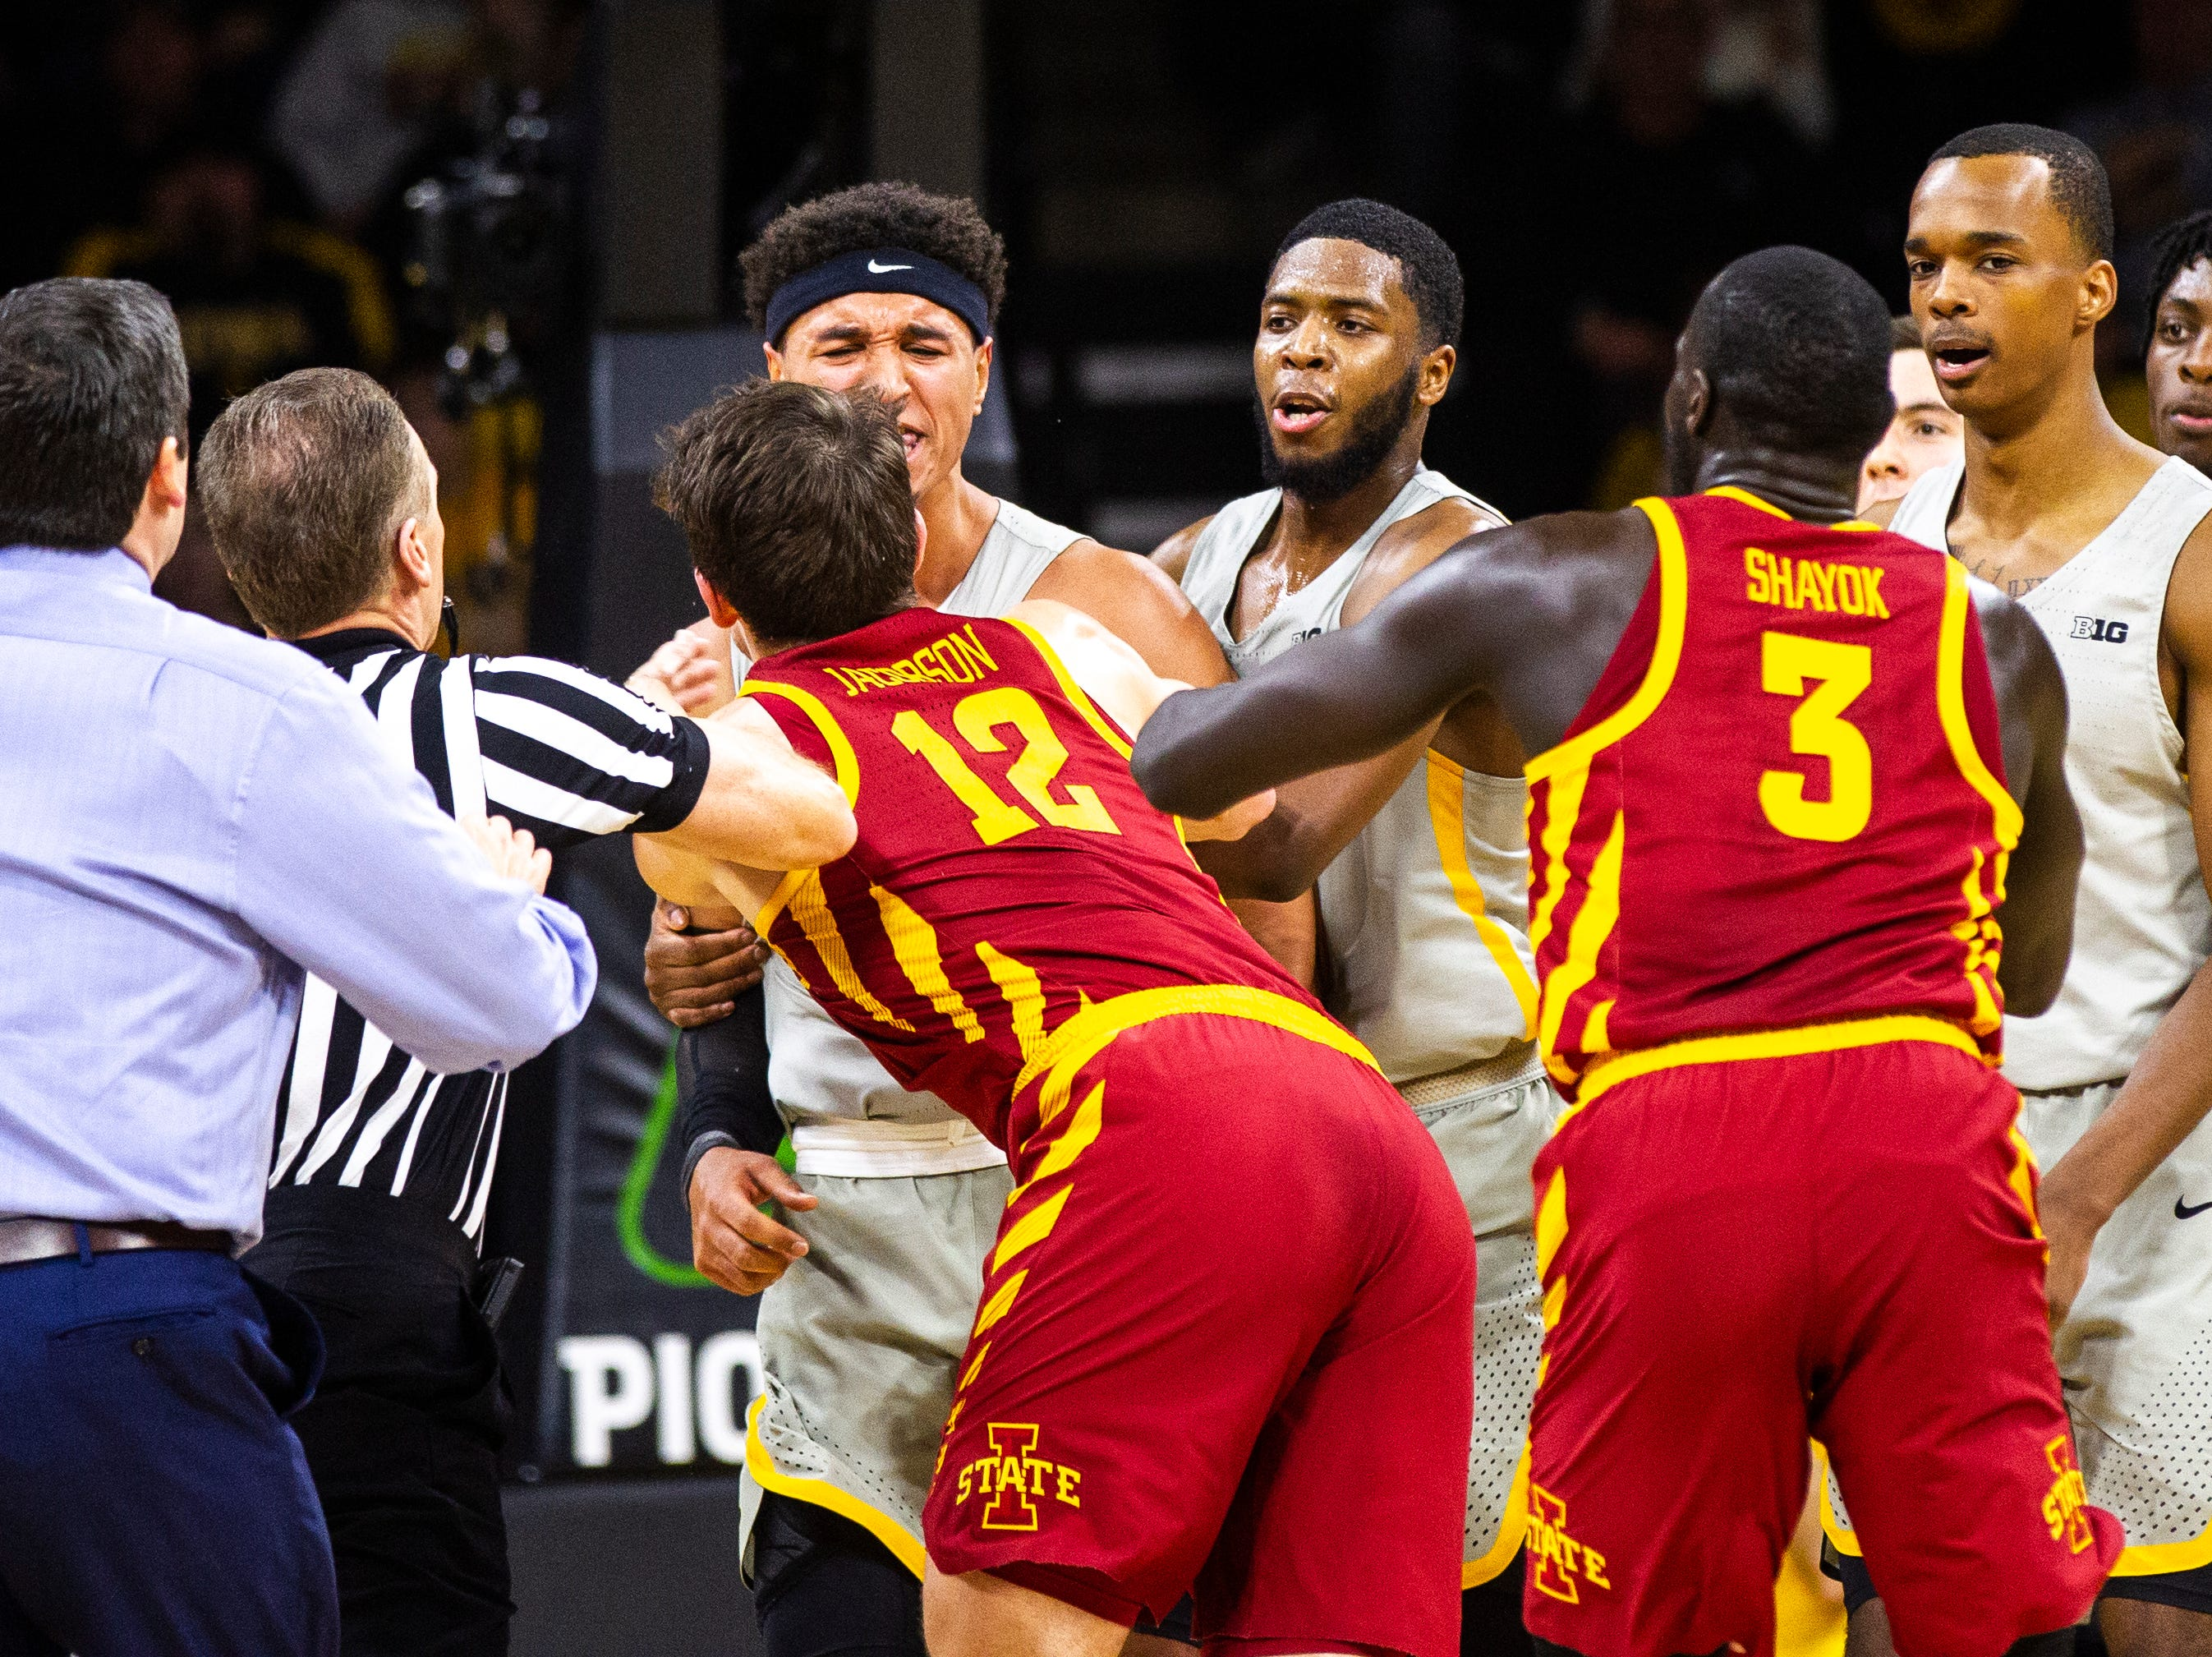 It didn't take long for the Cy-Hawk game to get heated